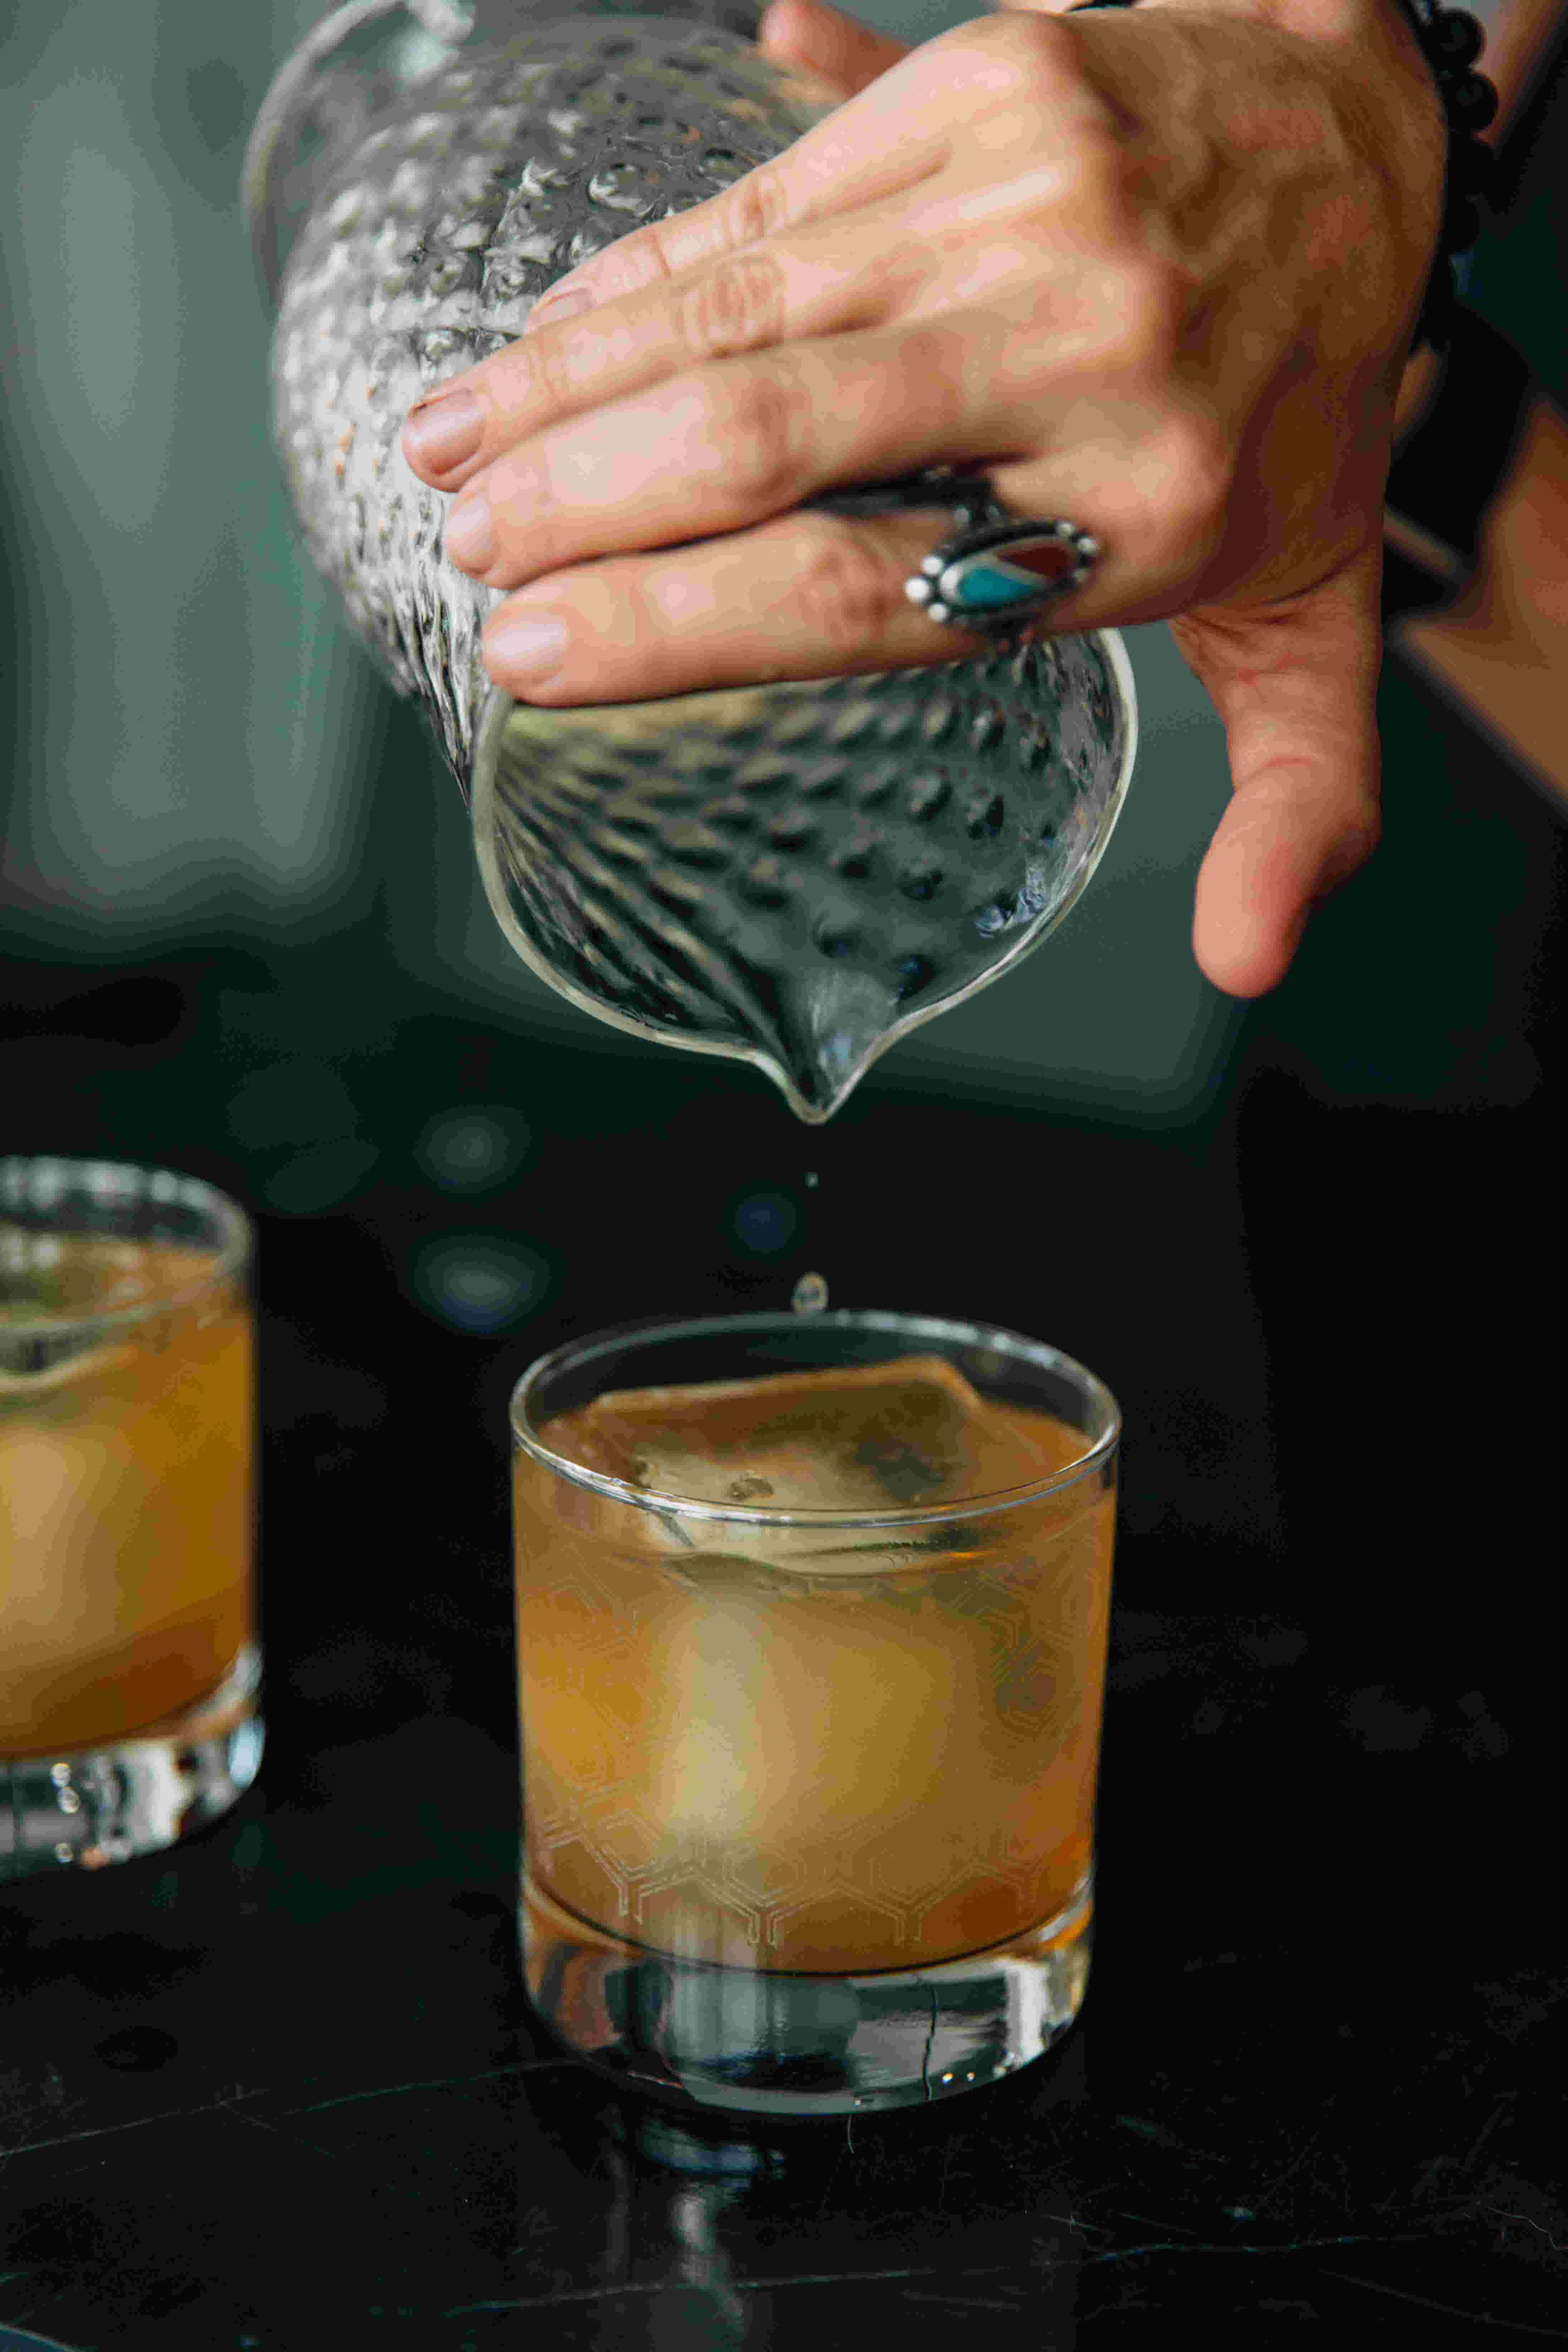 A bartender pouring a cocktail from a clear pitcher into a clear etched lowball glass